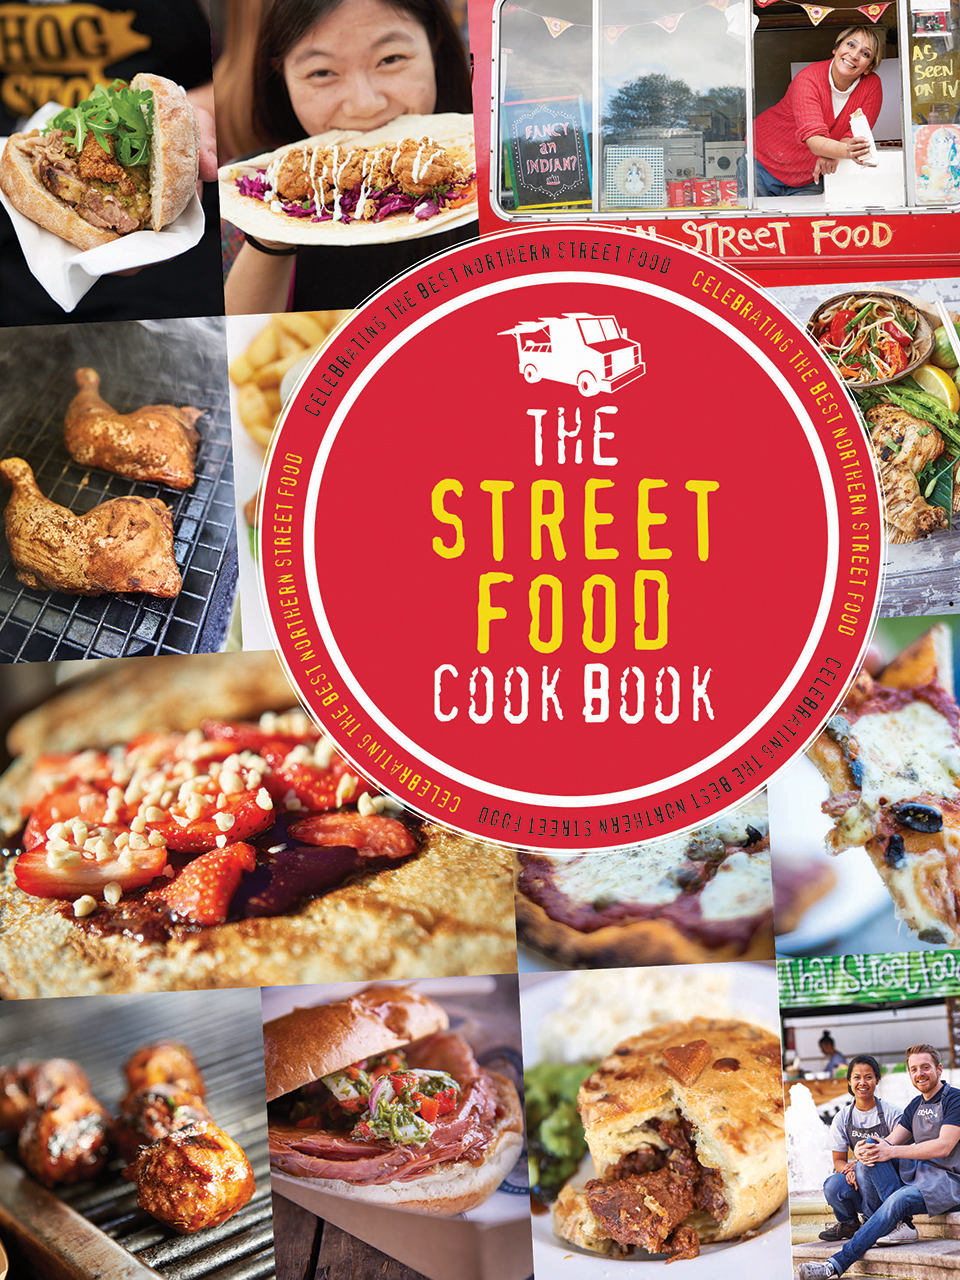 The street food cook book northern edition meze publishing we bookshop about us contact us forumfinder Images